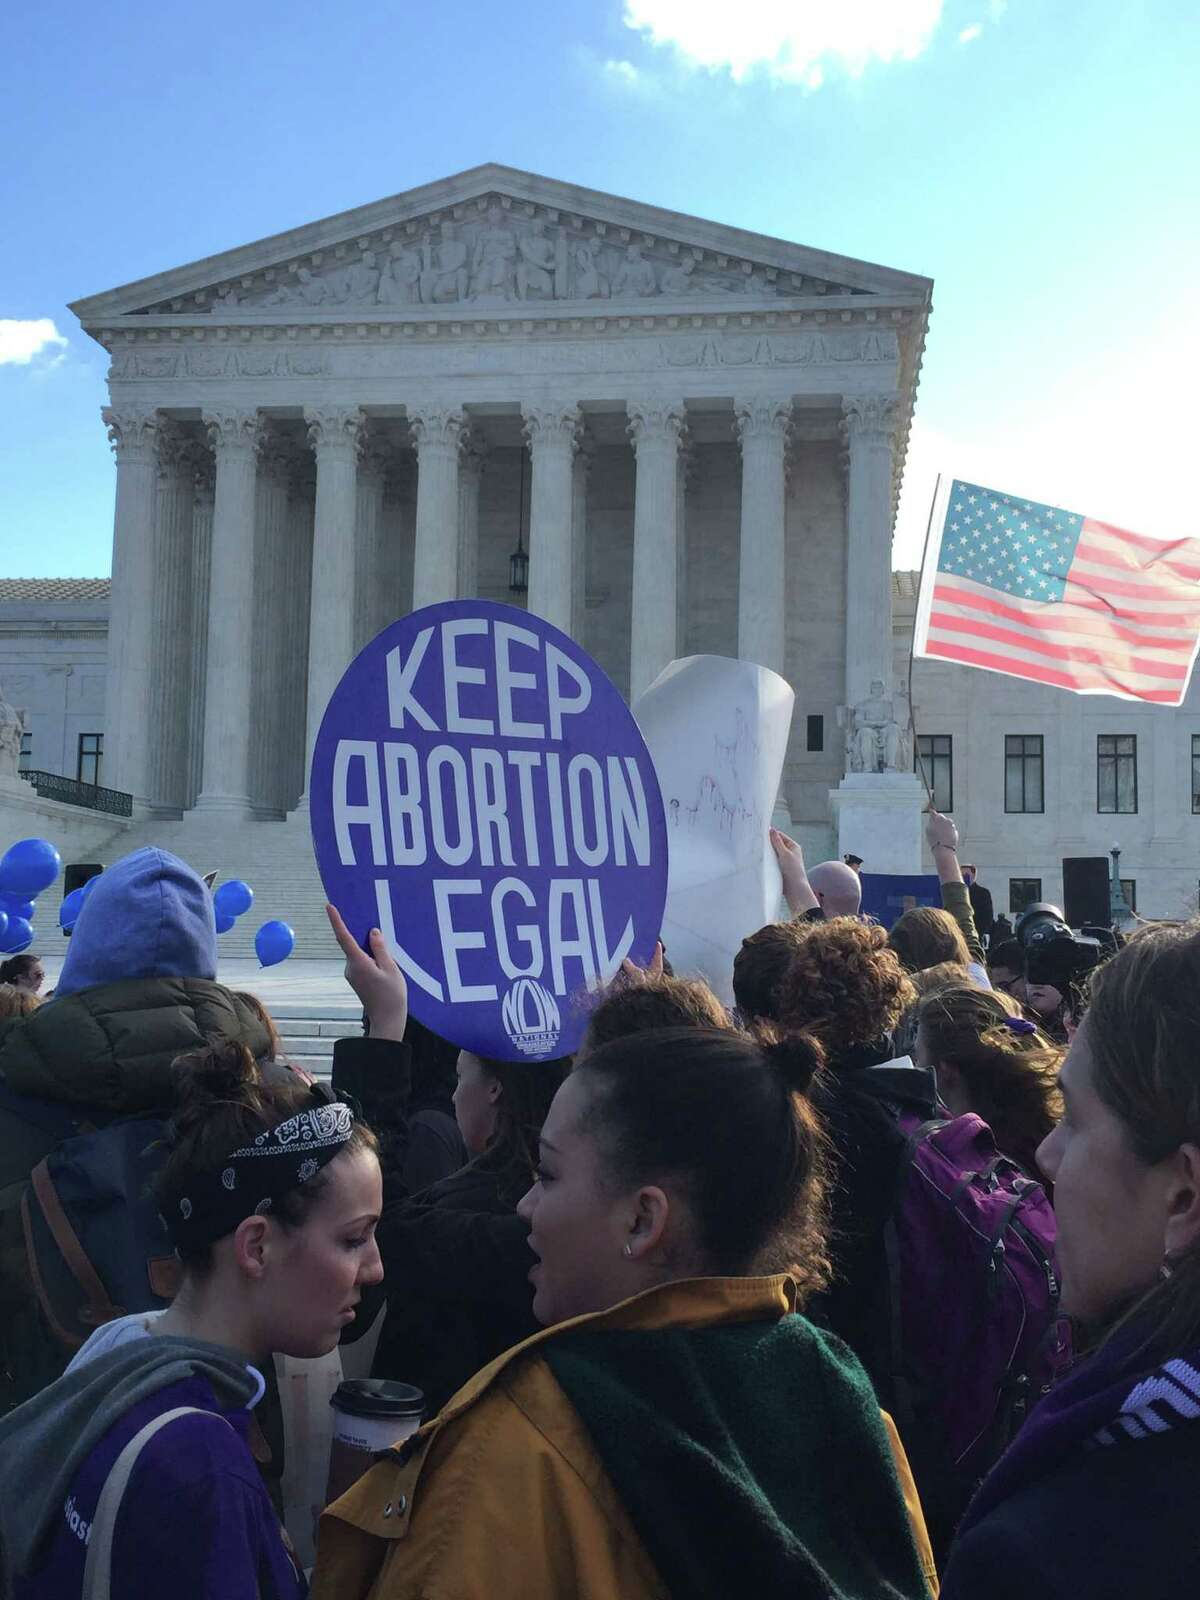 Roe v. Wade In a case originating in Texas, The U.S. Supreme Court decided in Roe v. Wade that women had a constitutional right to privacy about medical choices, clearing the way for the legalization of abortion in the states.